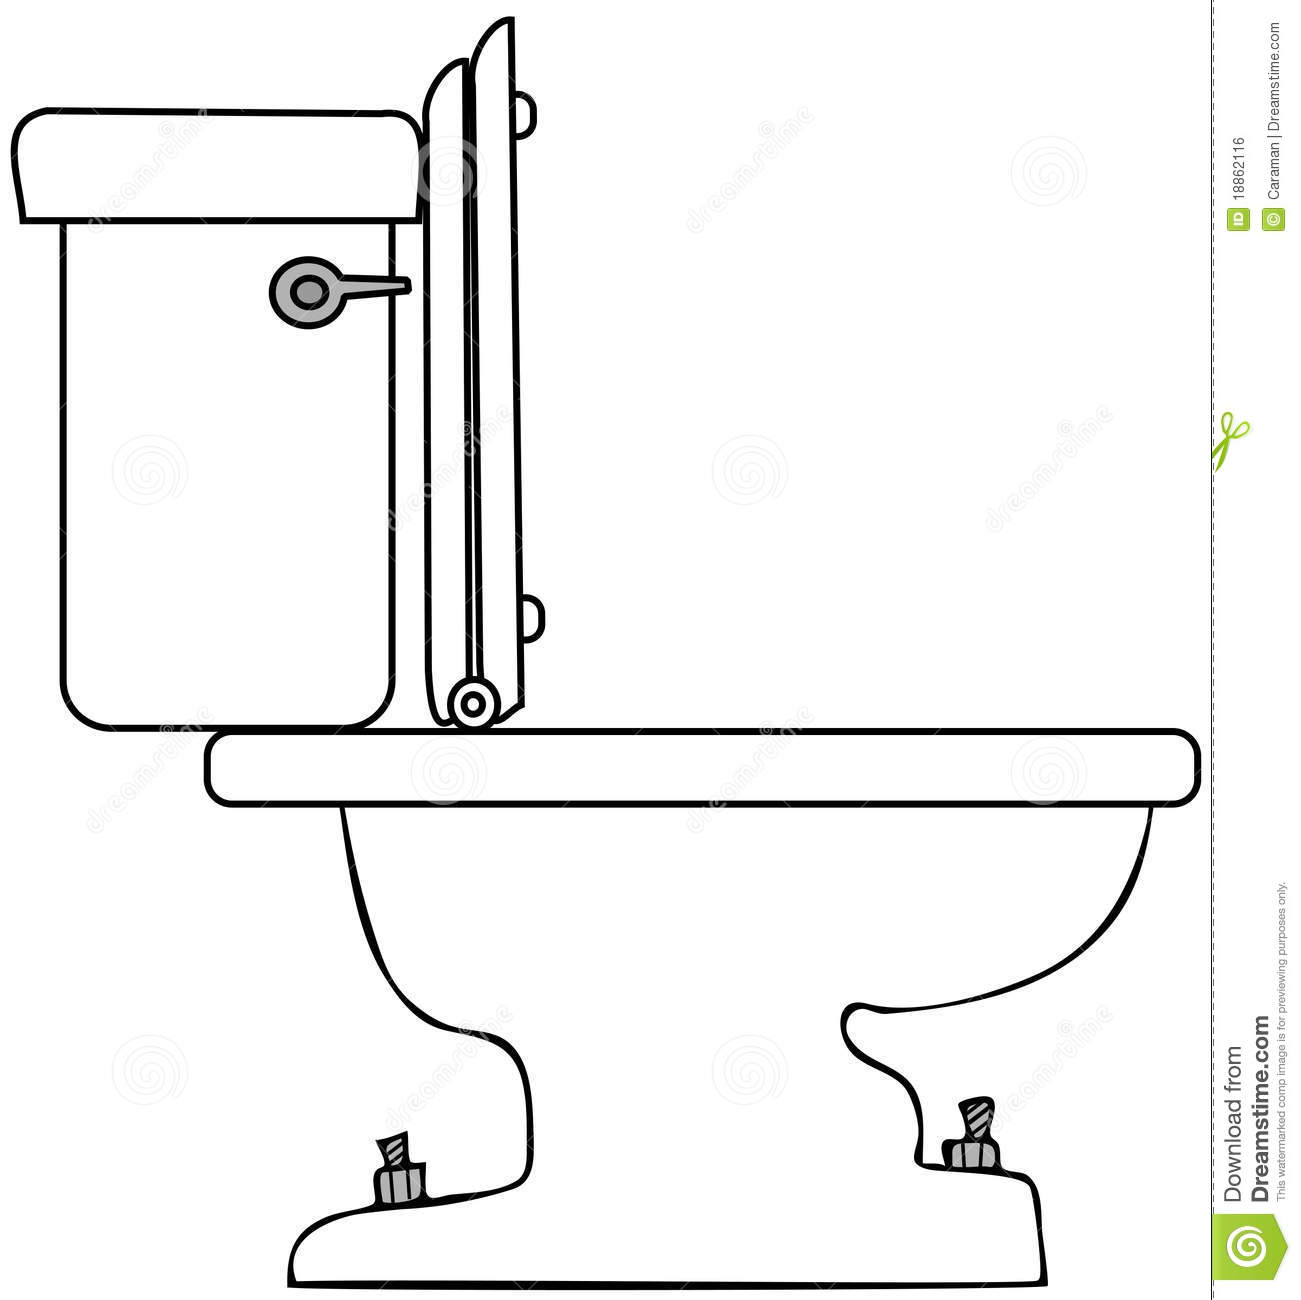 clipart overflowing toilet - photo #49